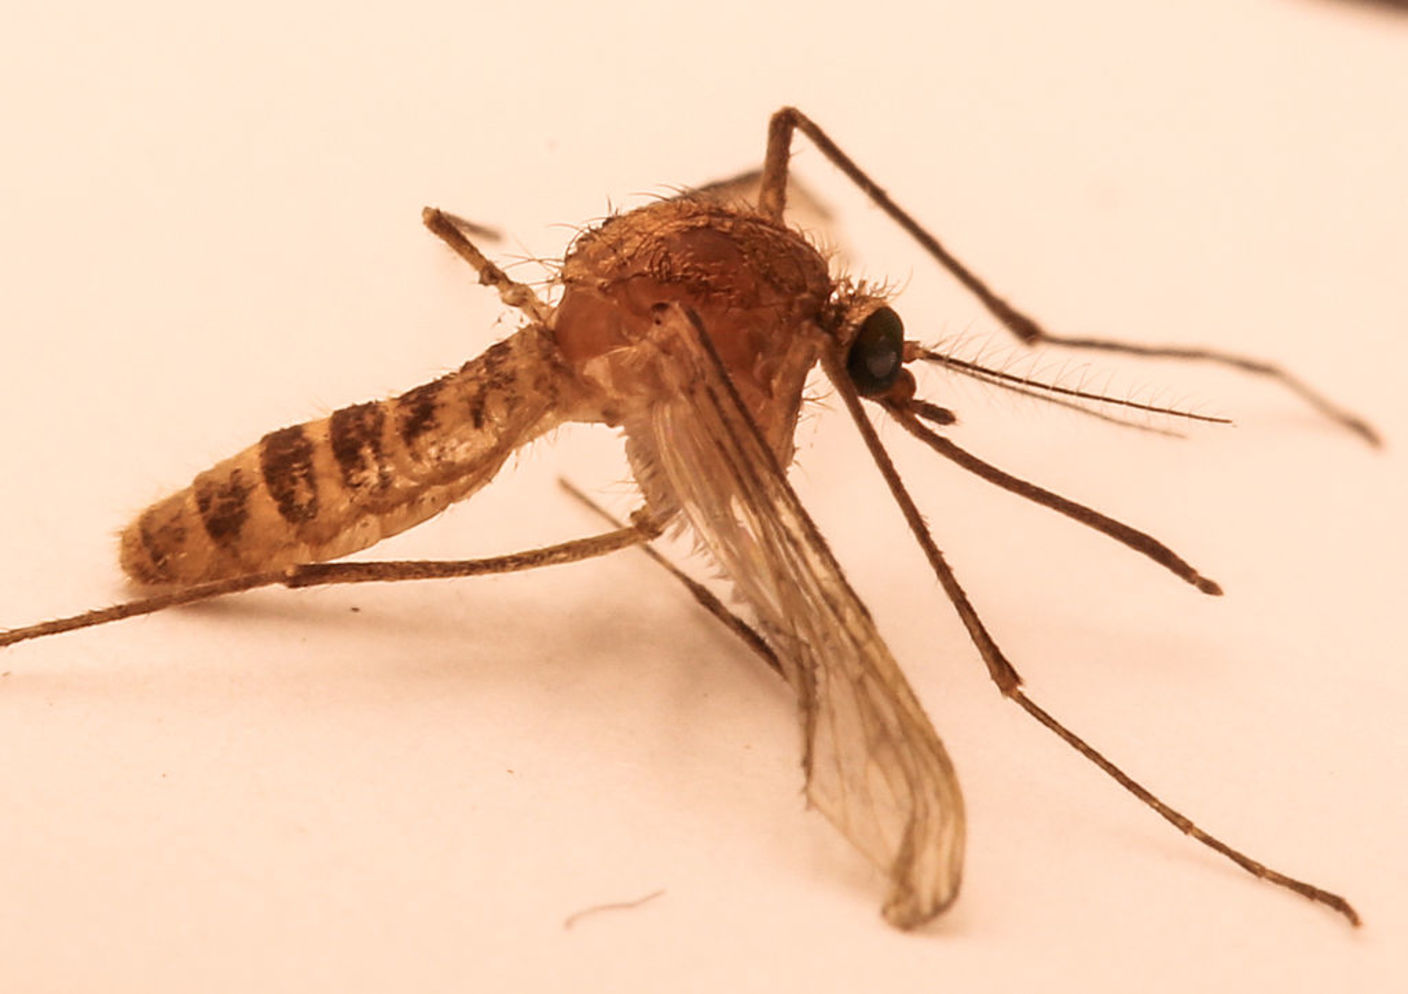 Culex pipiens f. molestus, the mosquito species unique to the London Underground. - Image Credit:Walkabout12, CC BY-SA